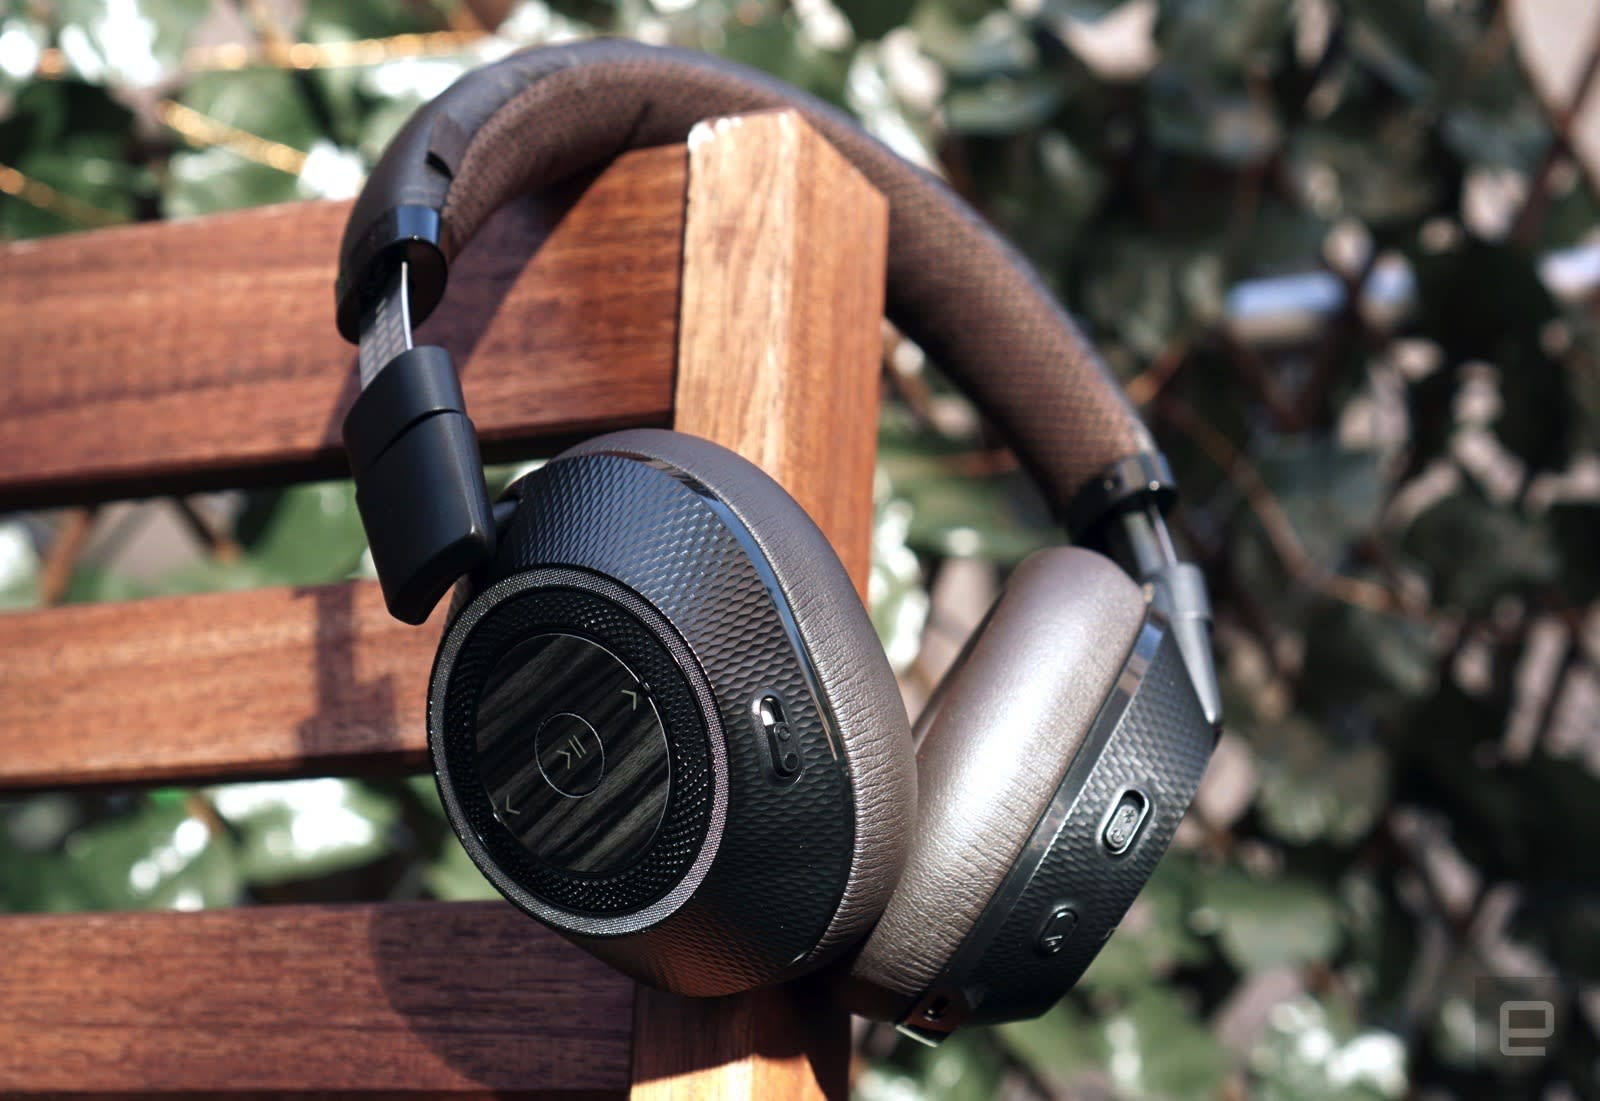 Plantronics New Wireless Cans Deliver Noise Canceling For 200 Engadget